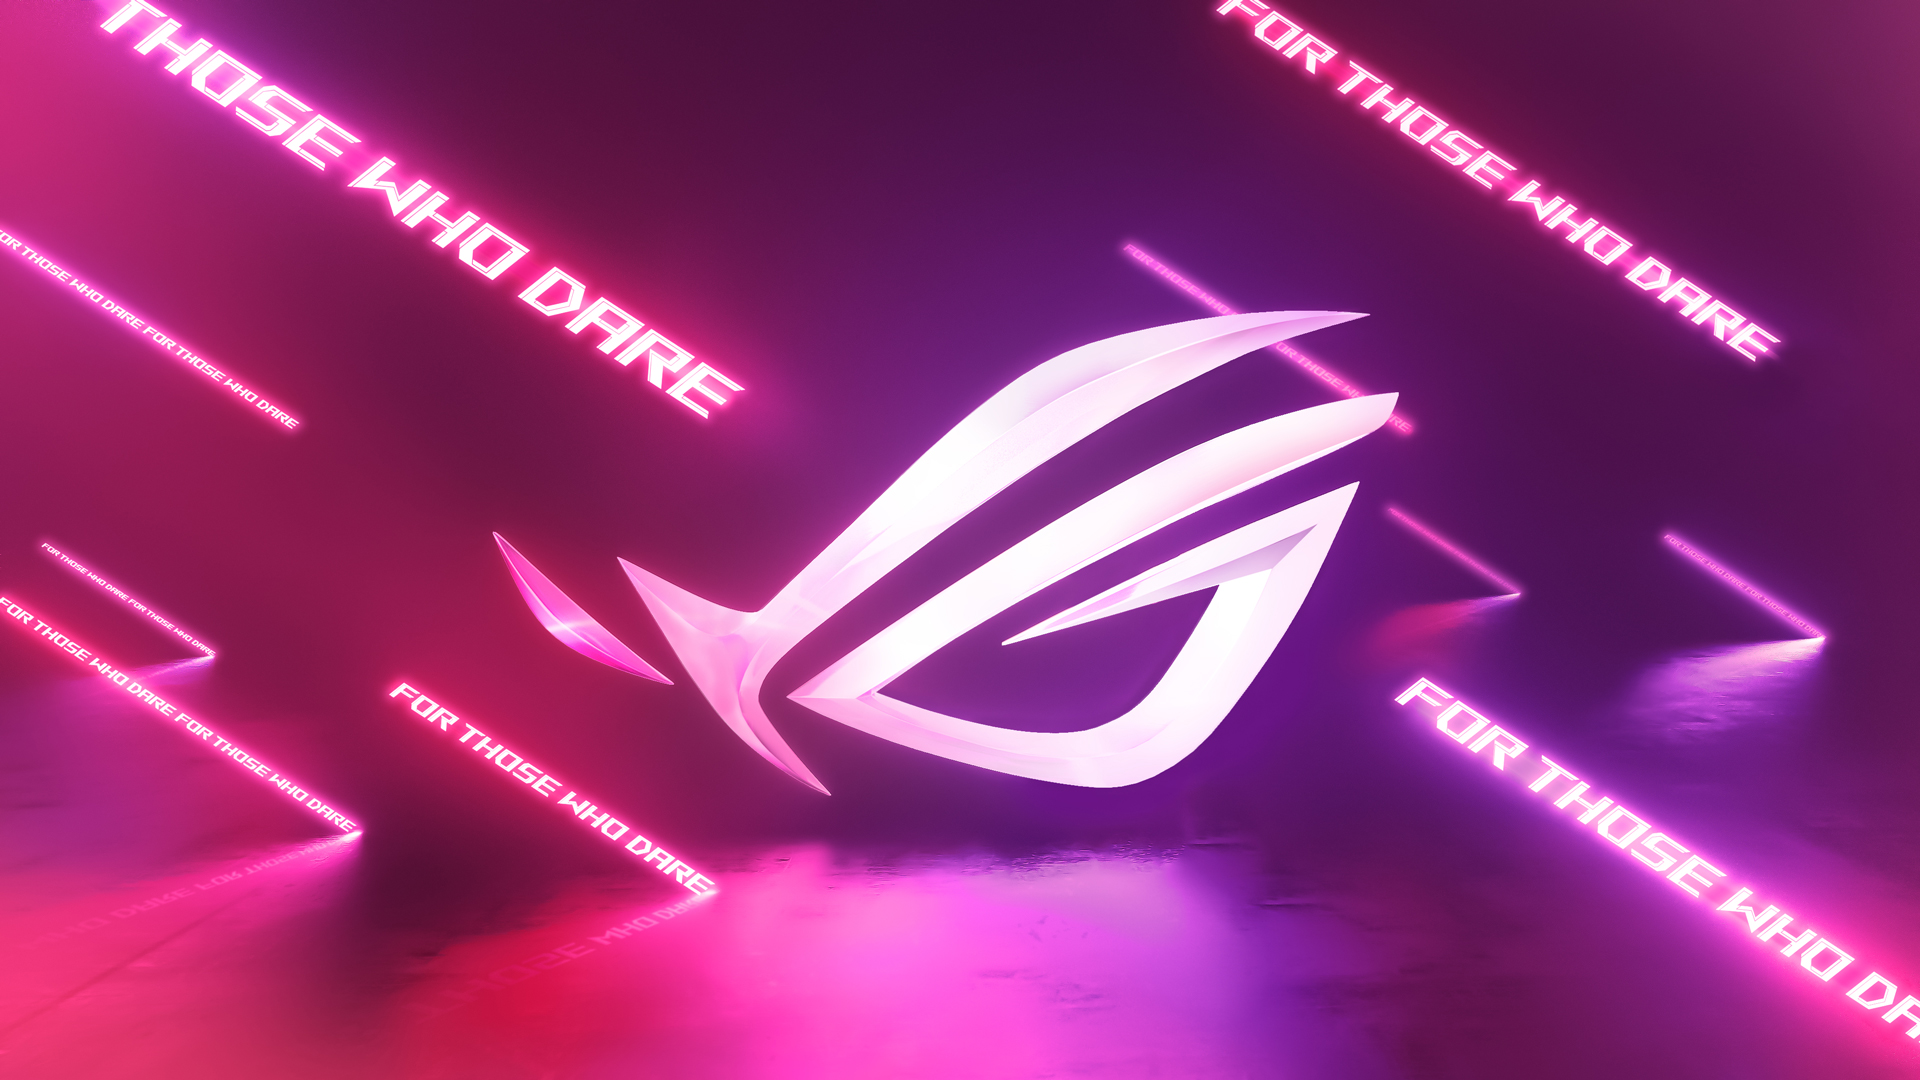 ROG_Strix Electropunk wallpaper